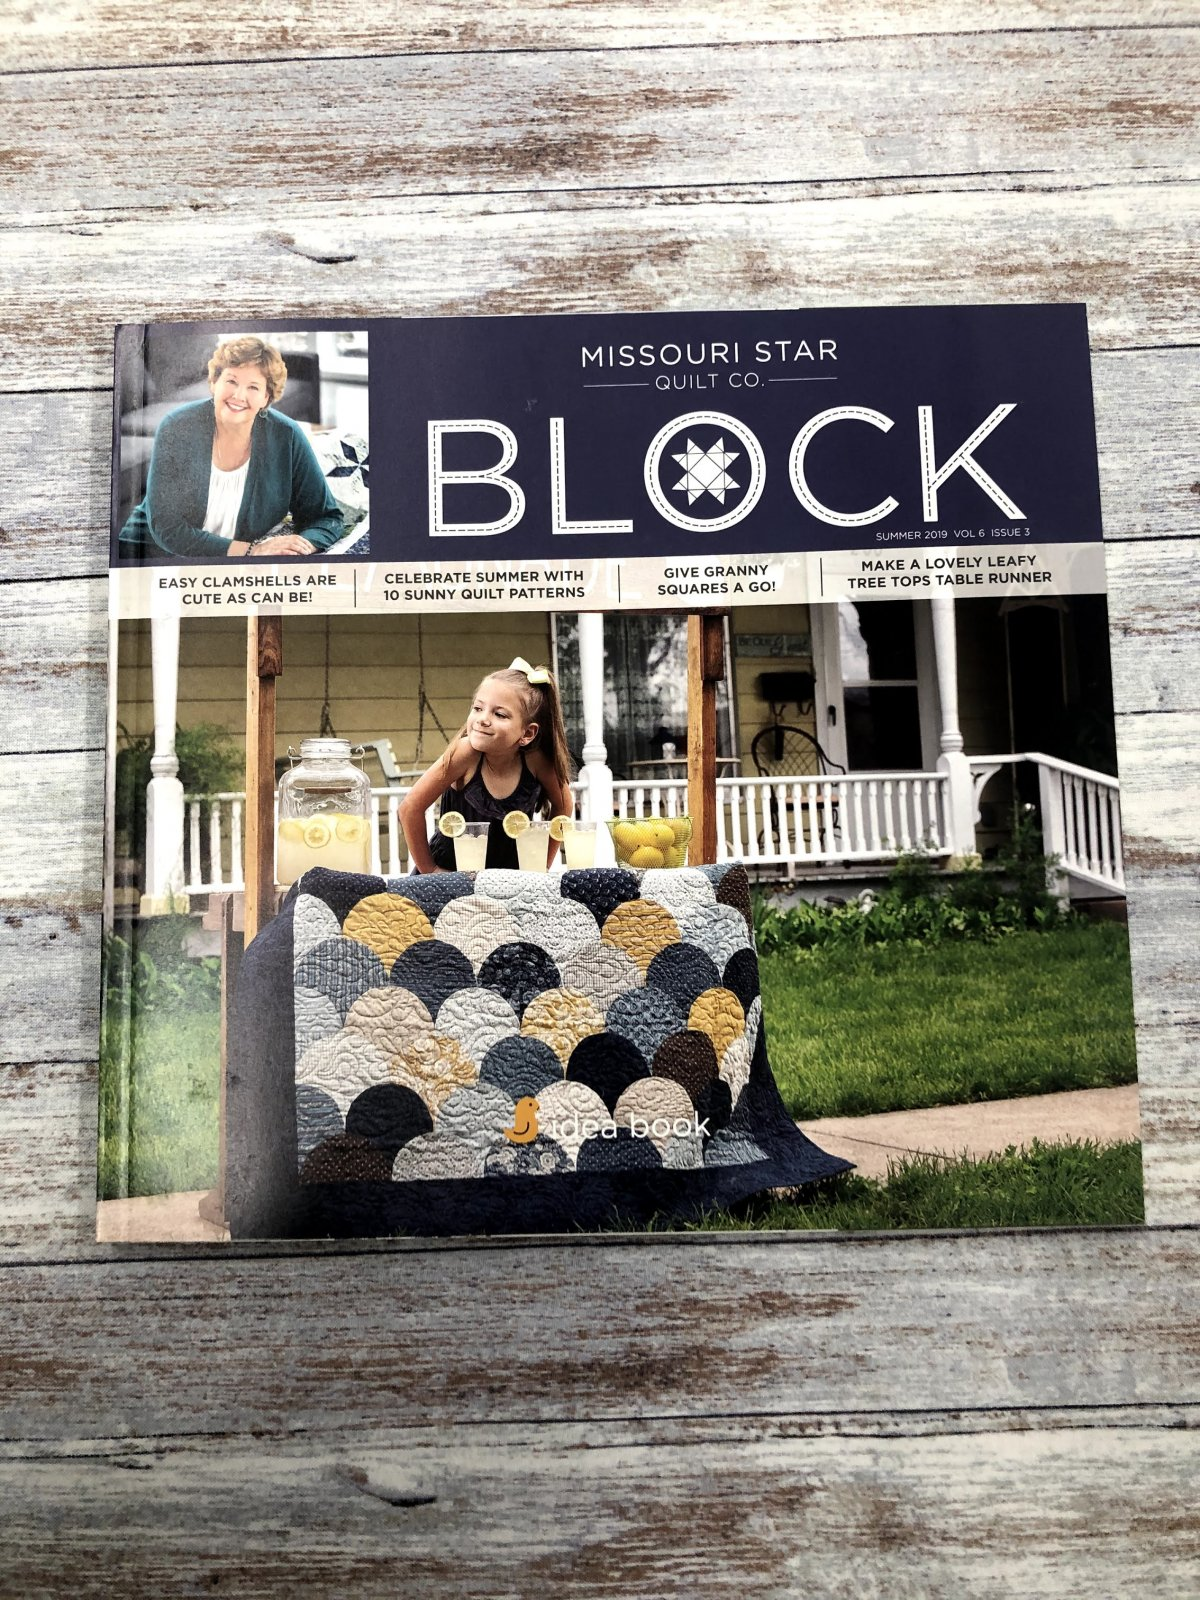 Missouri Star Block Summer 2019 Vol 6 Issue 3